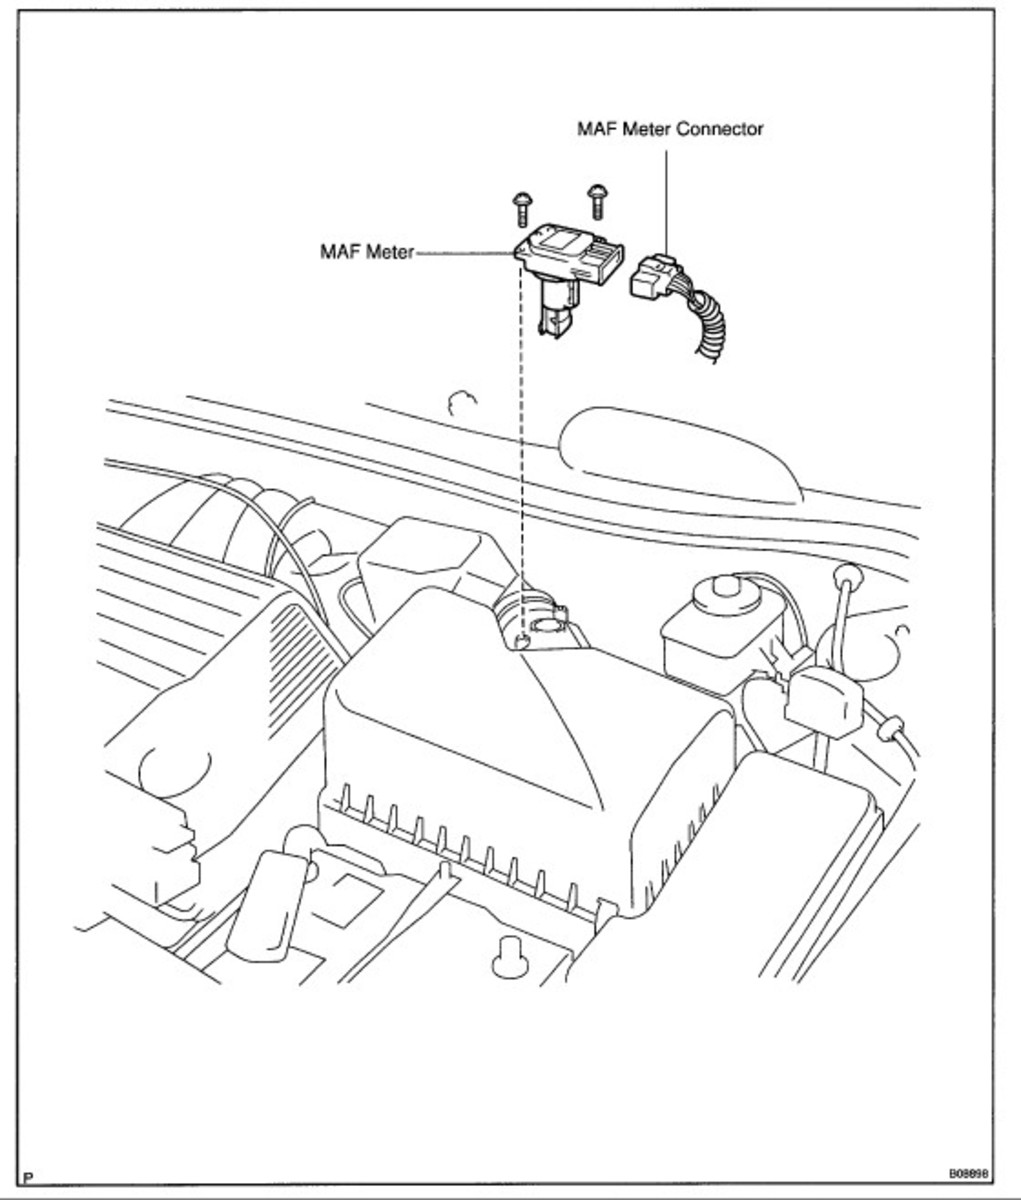 Location Of Maf Sensor: Toyota Tazz Wiring Diagram Manual At Ultimateadsites.com